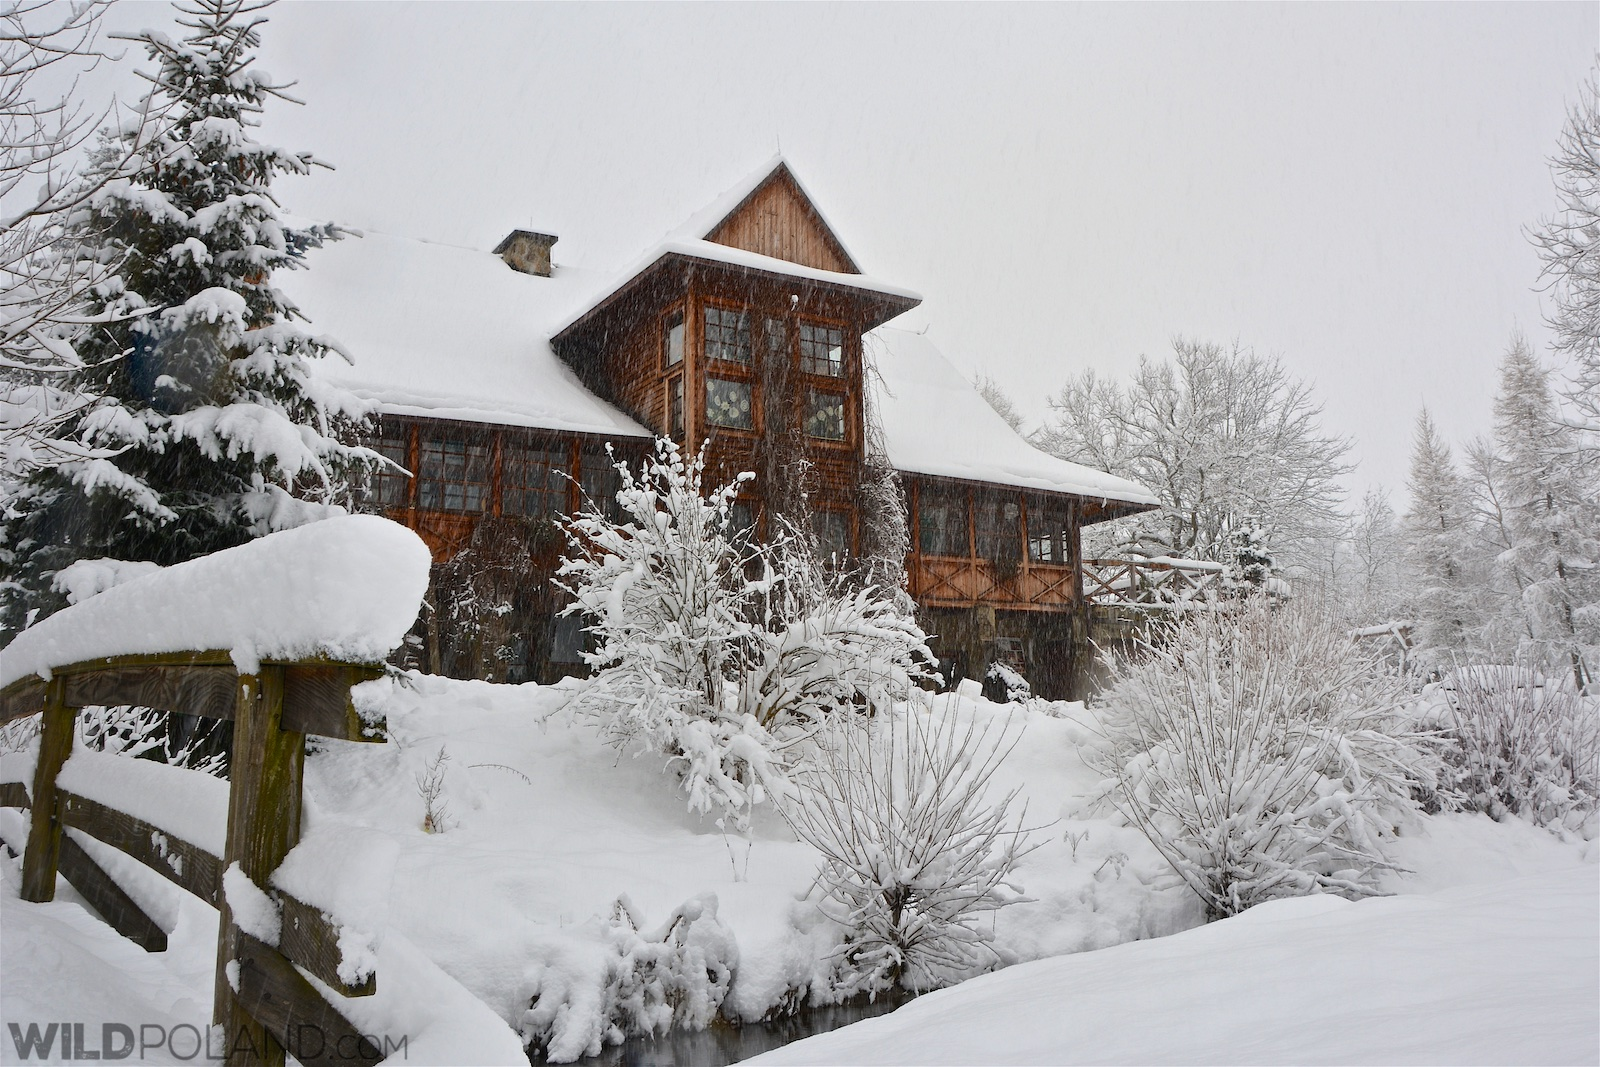 Our guesthouse in the snow early morning